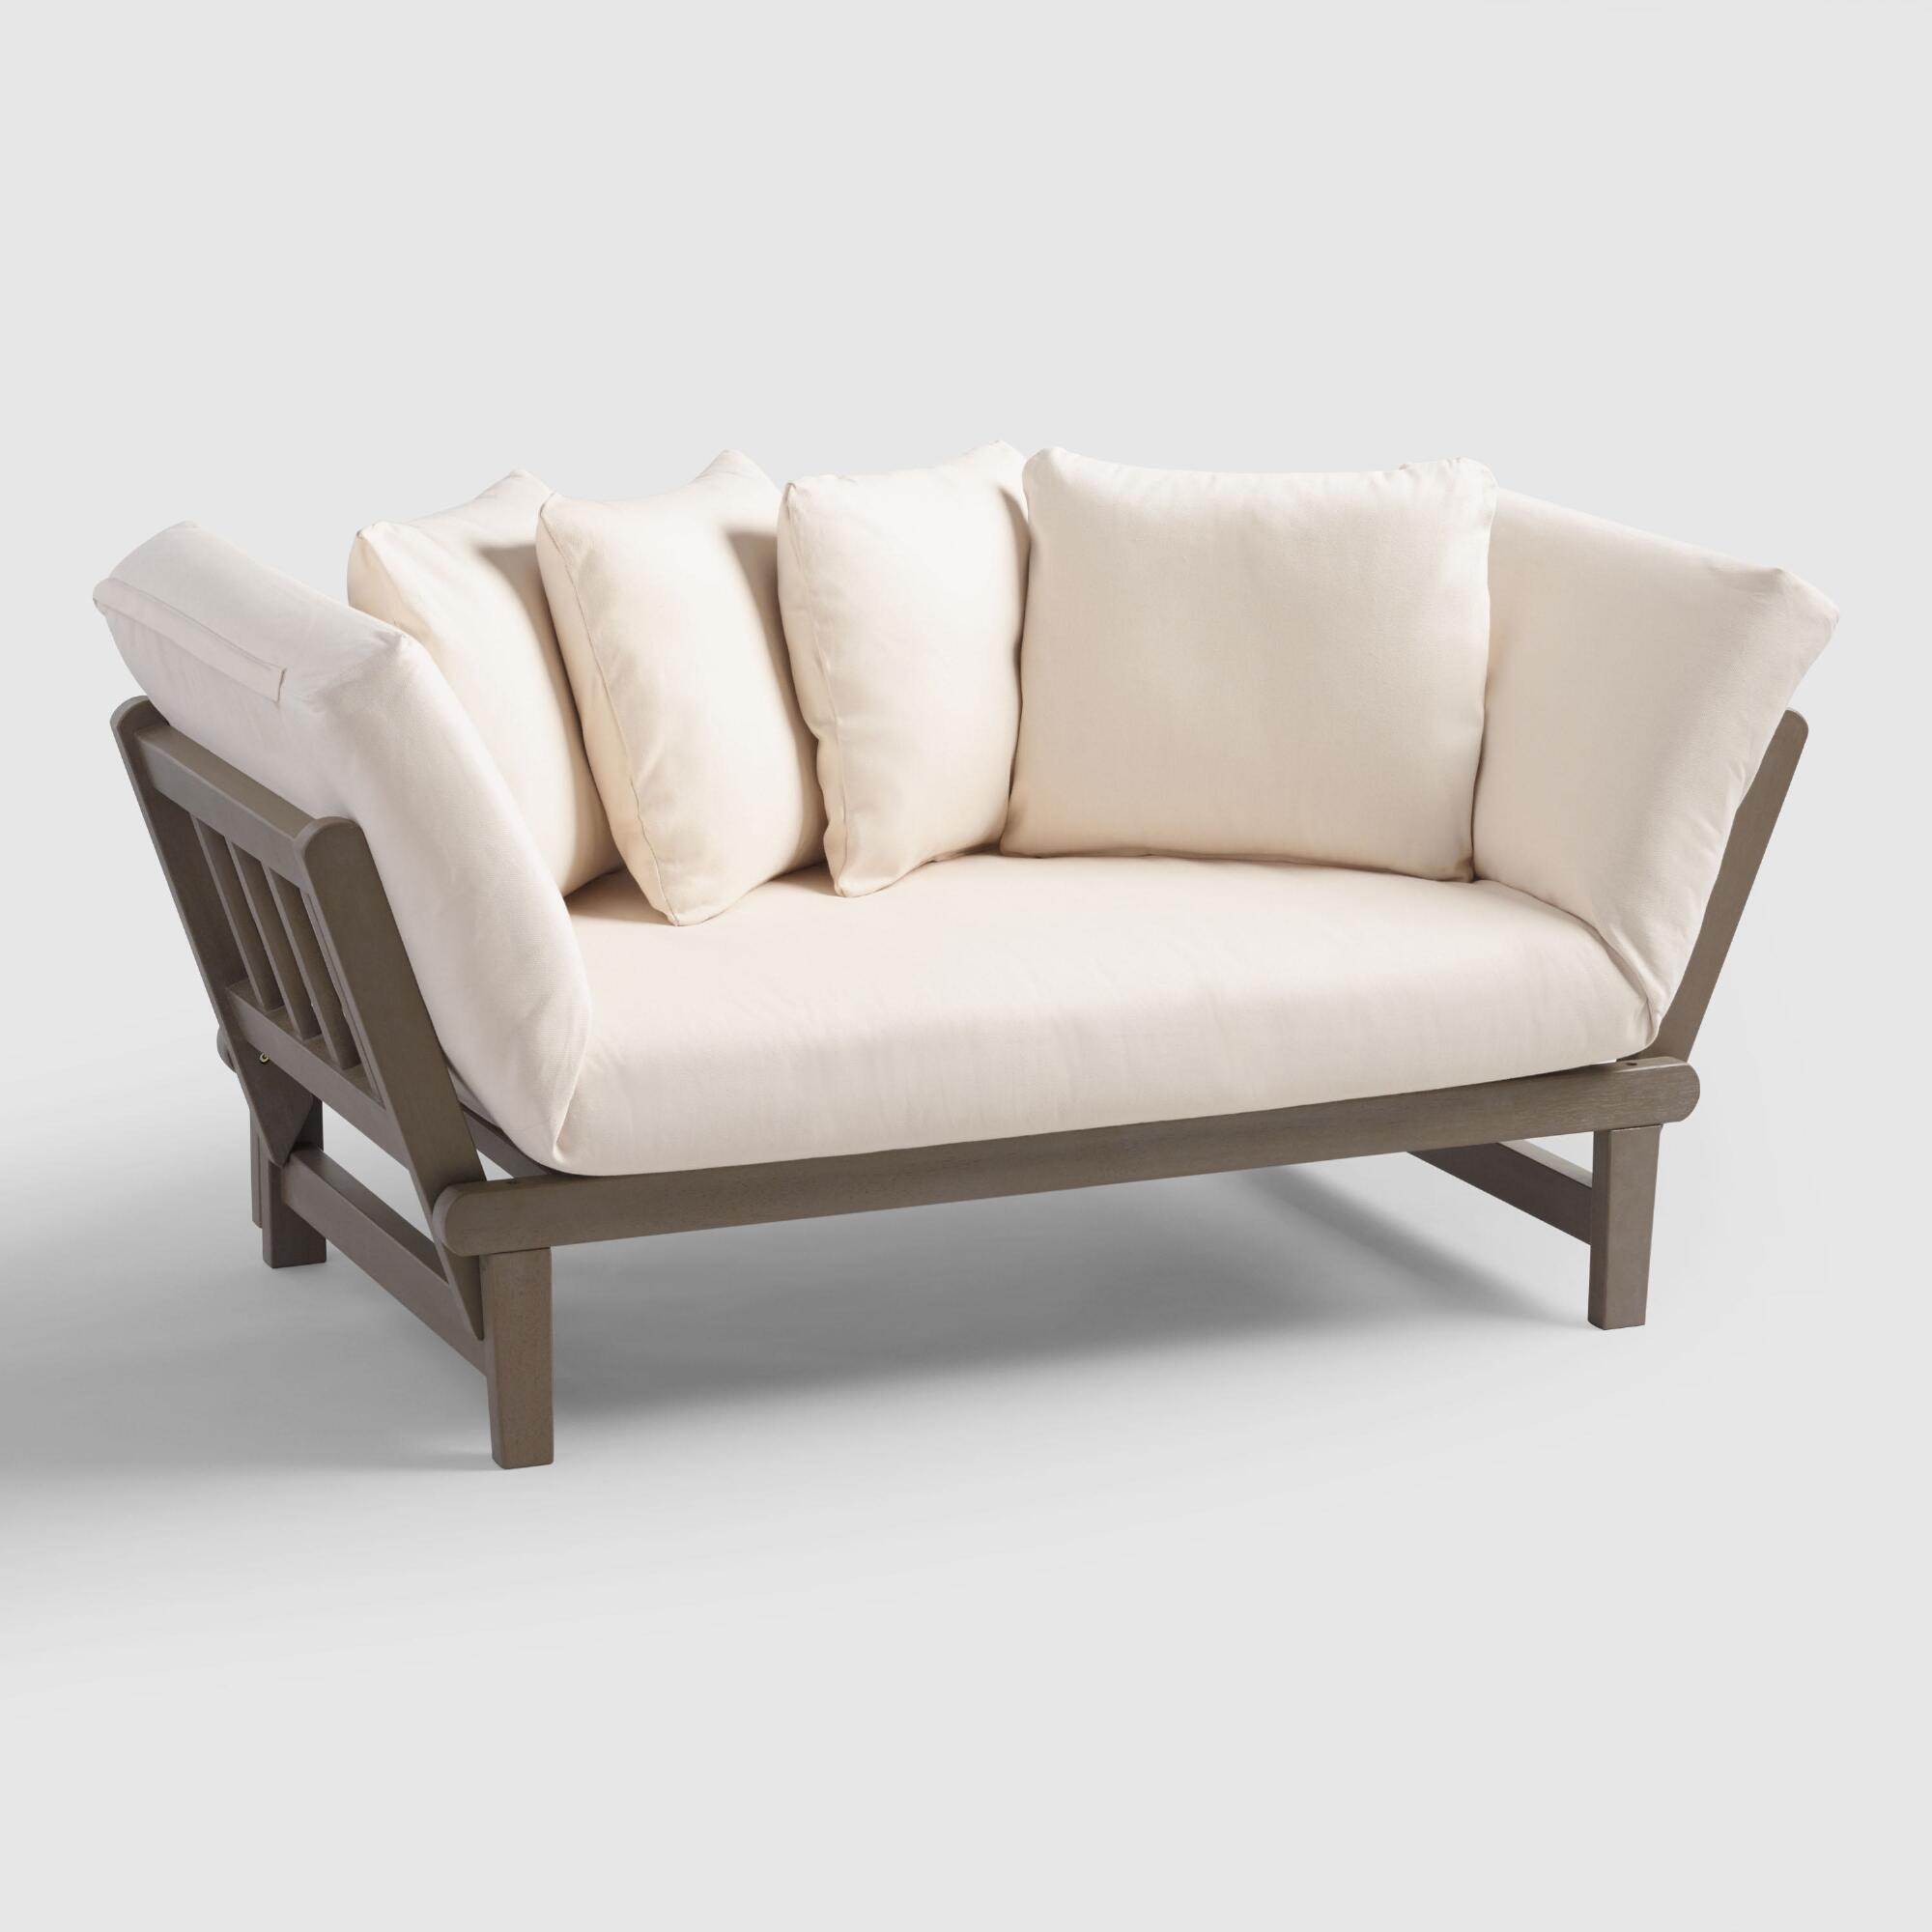 Graywash studio day sofa world market for Bedroom loveseat